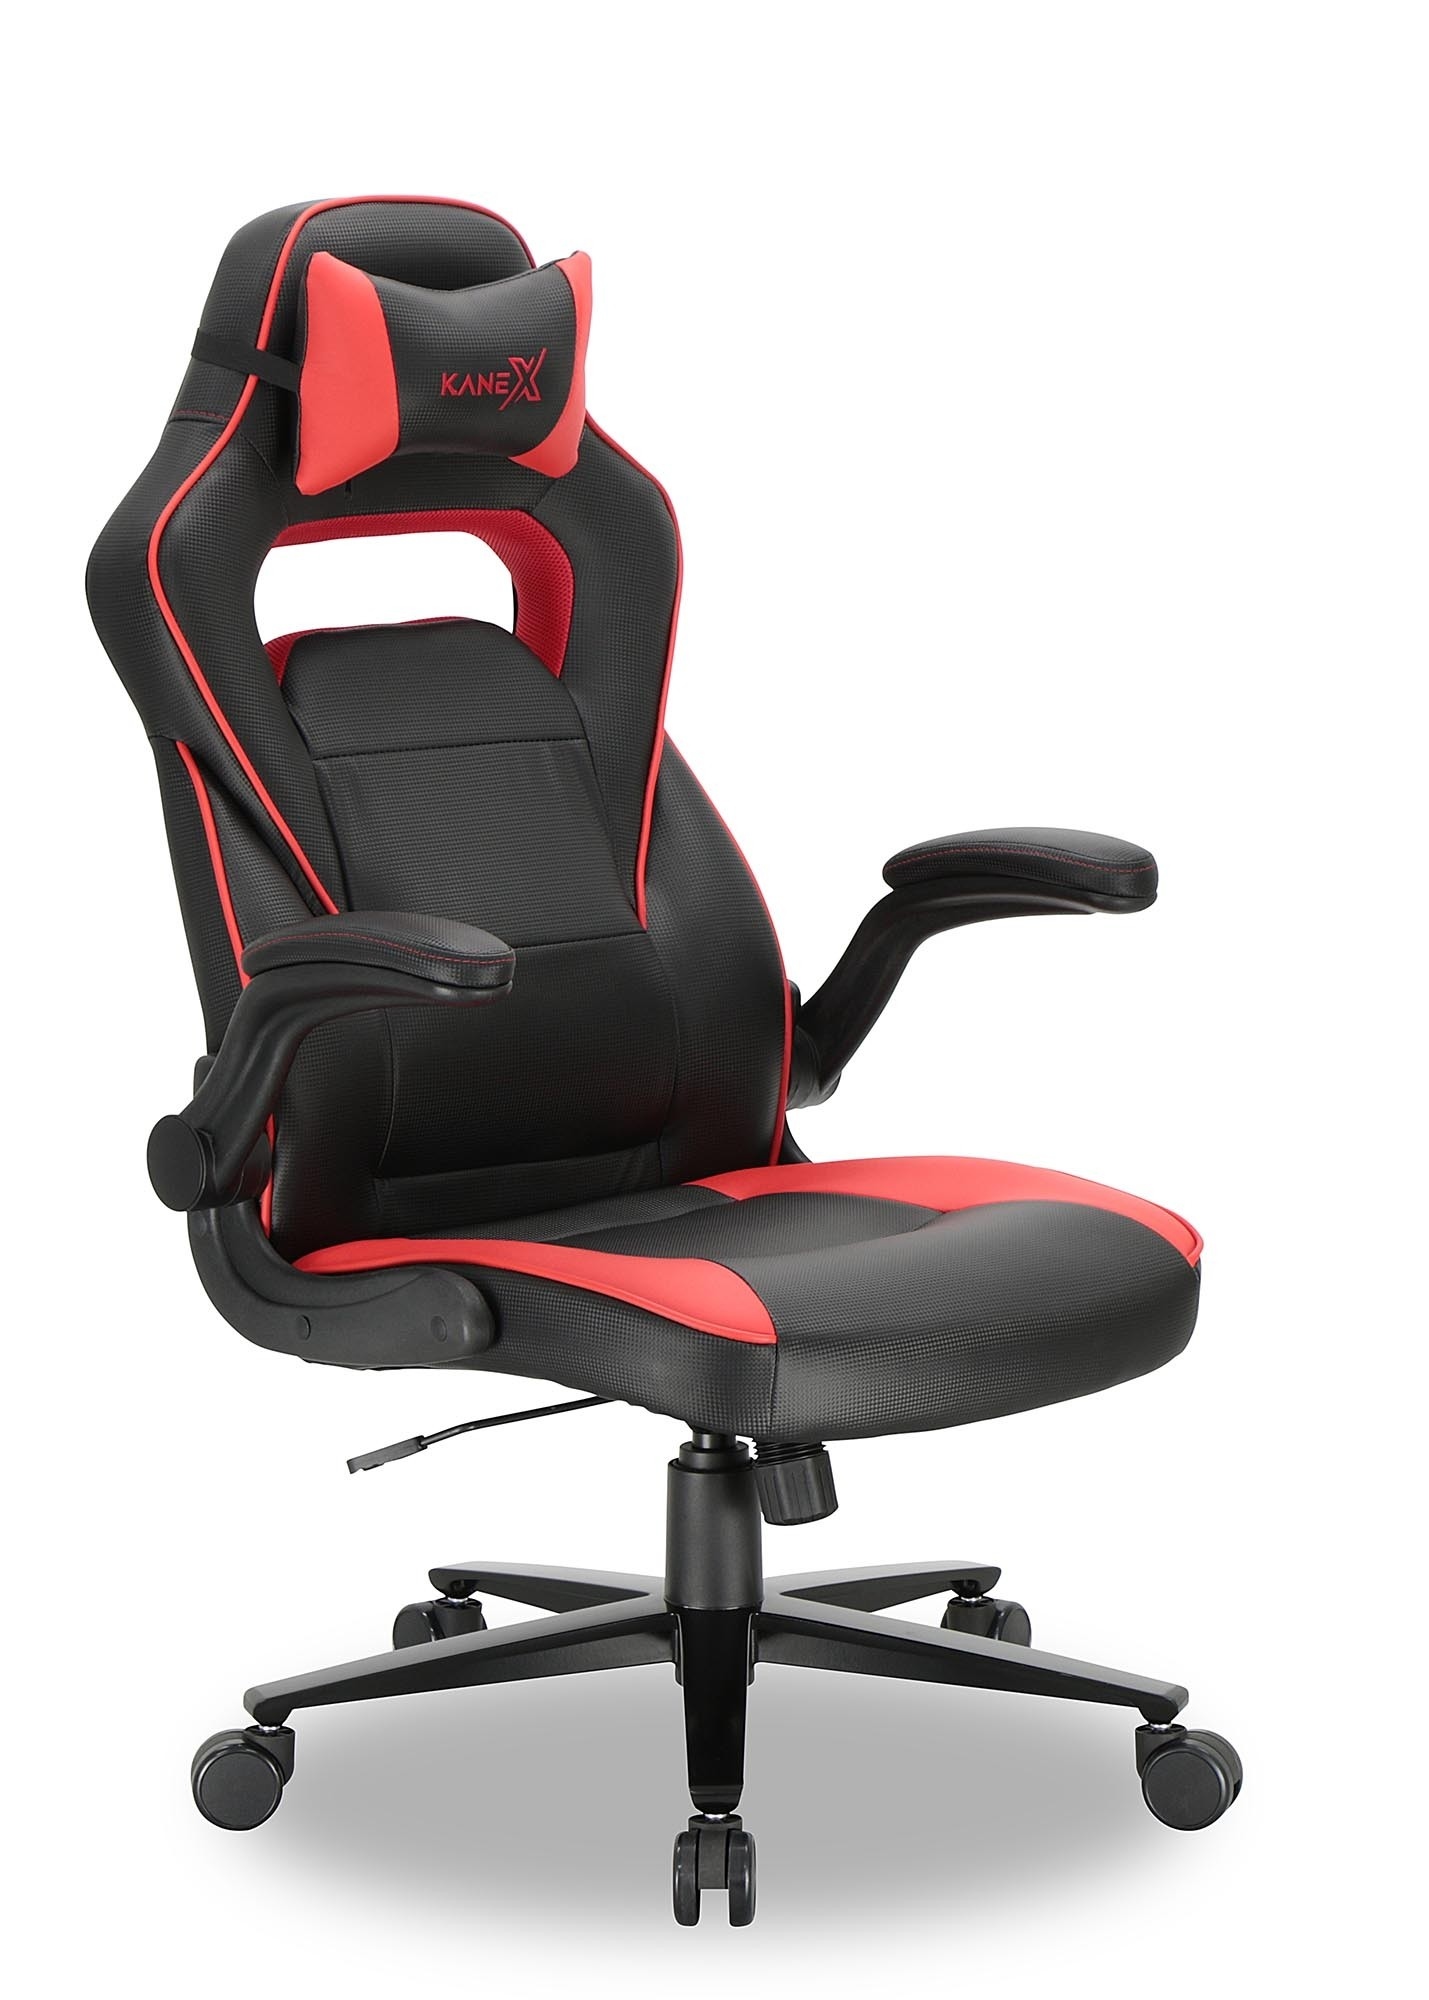 Gamers Chairs Kane X Professional Gaming Chair Argus Red